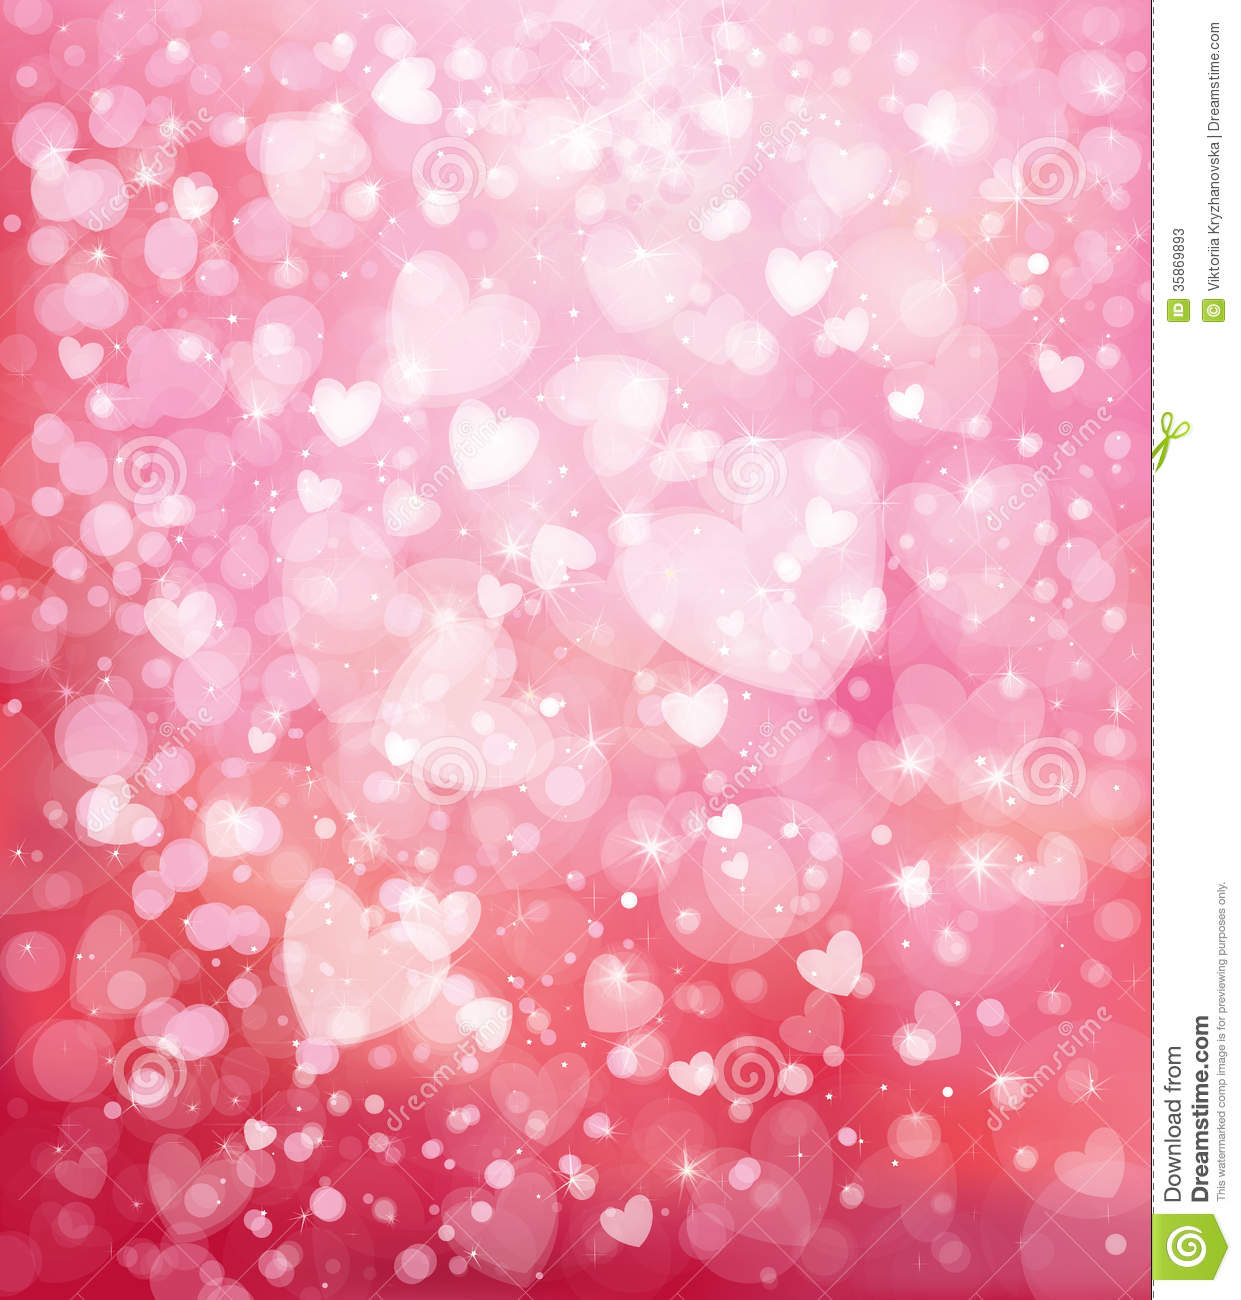 holiday hearts wallpaper vector - photo #49